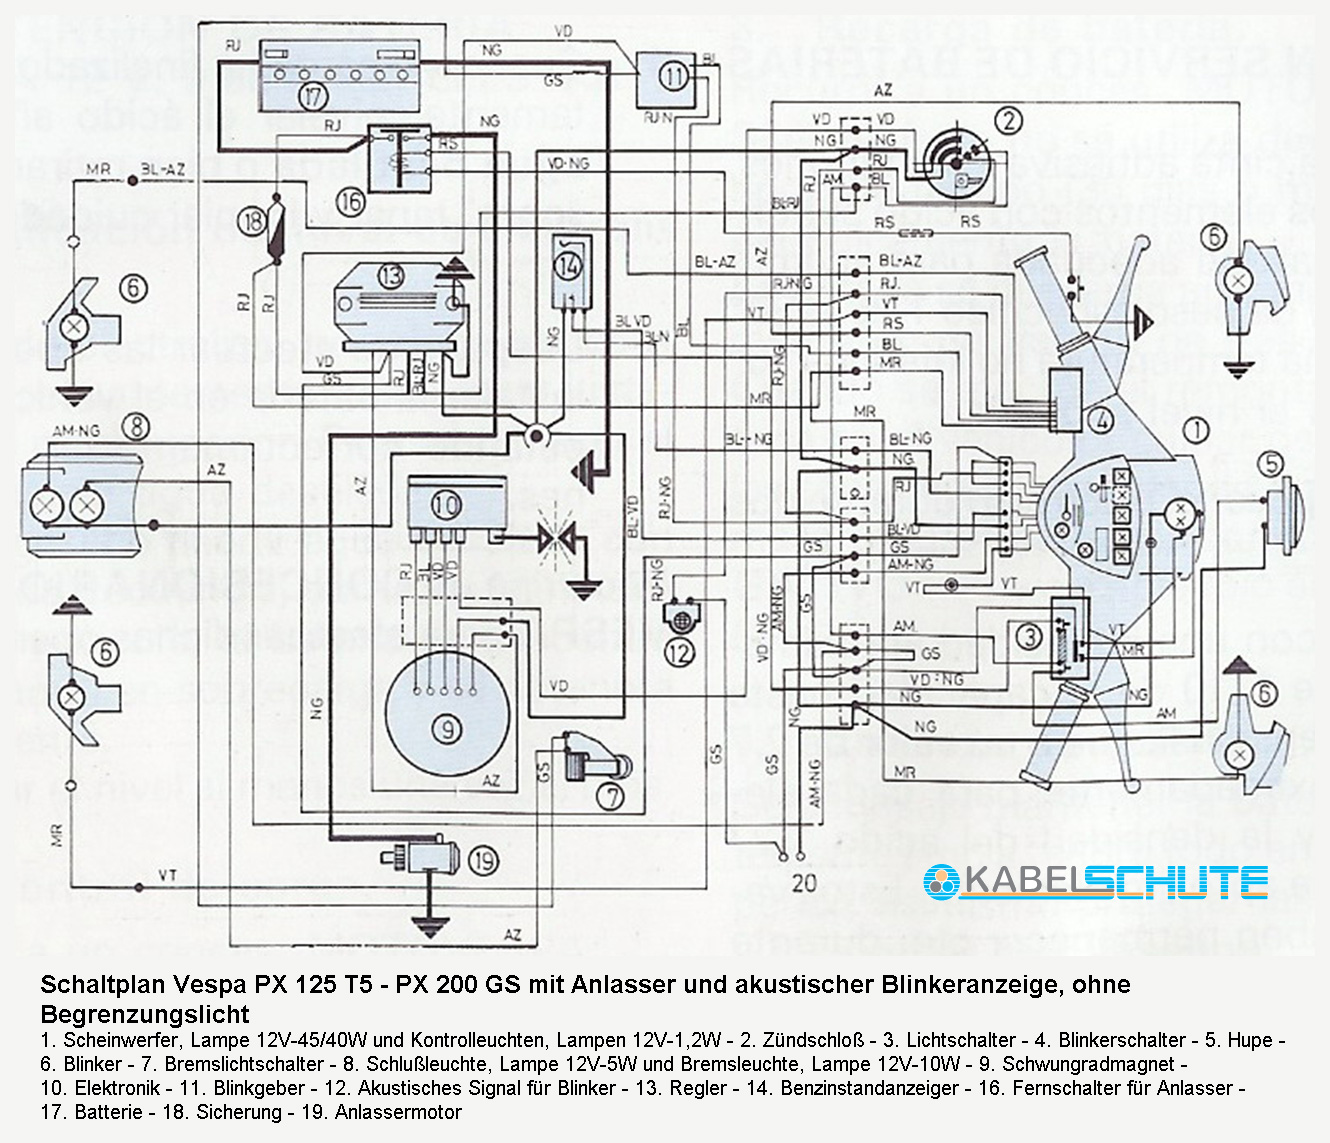 Vespa P200 E Model Wiring Diagram moreover Wiring Diagram 1978 Vespa Piaggio besides Window Wiring Diagram 1999 Vw Beetle in addition  on vespa p200 wiring diagram